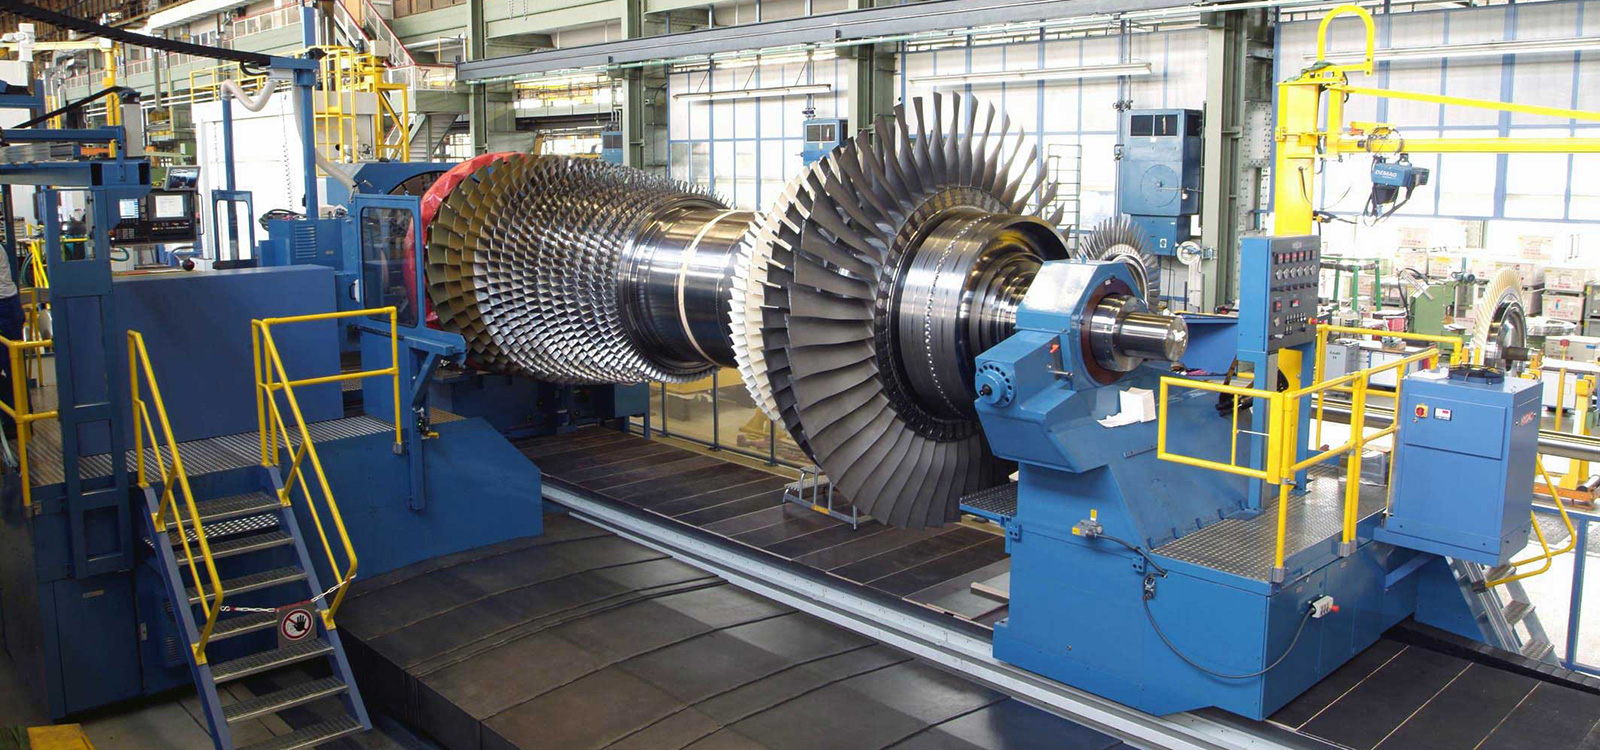 GEORG machine tool for gas turbine manufacturing in Russia